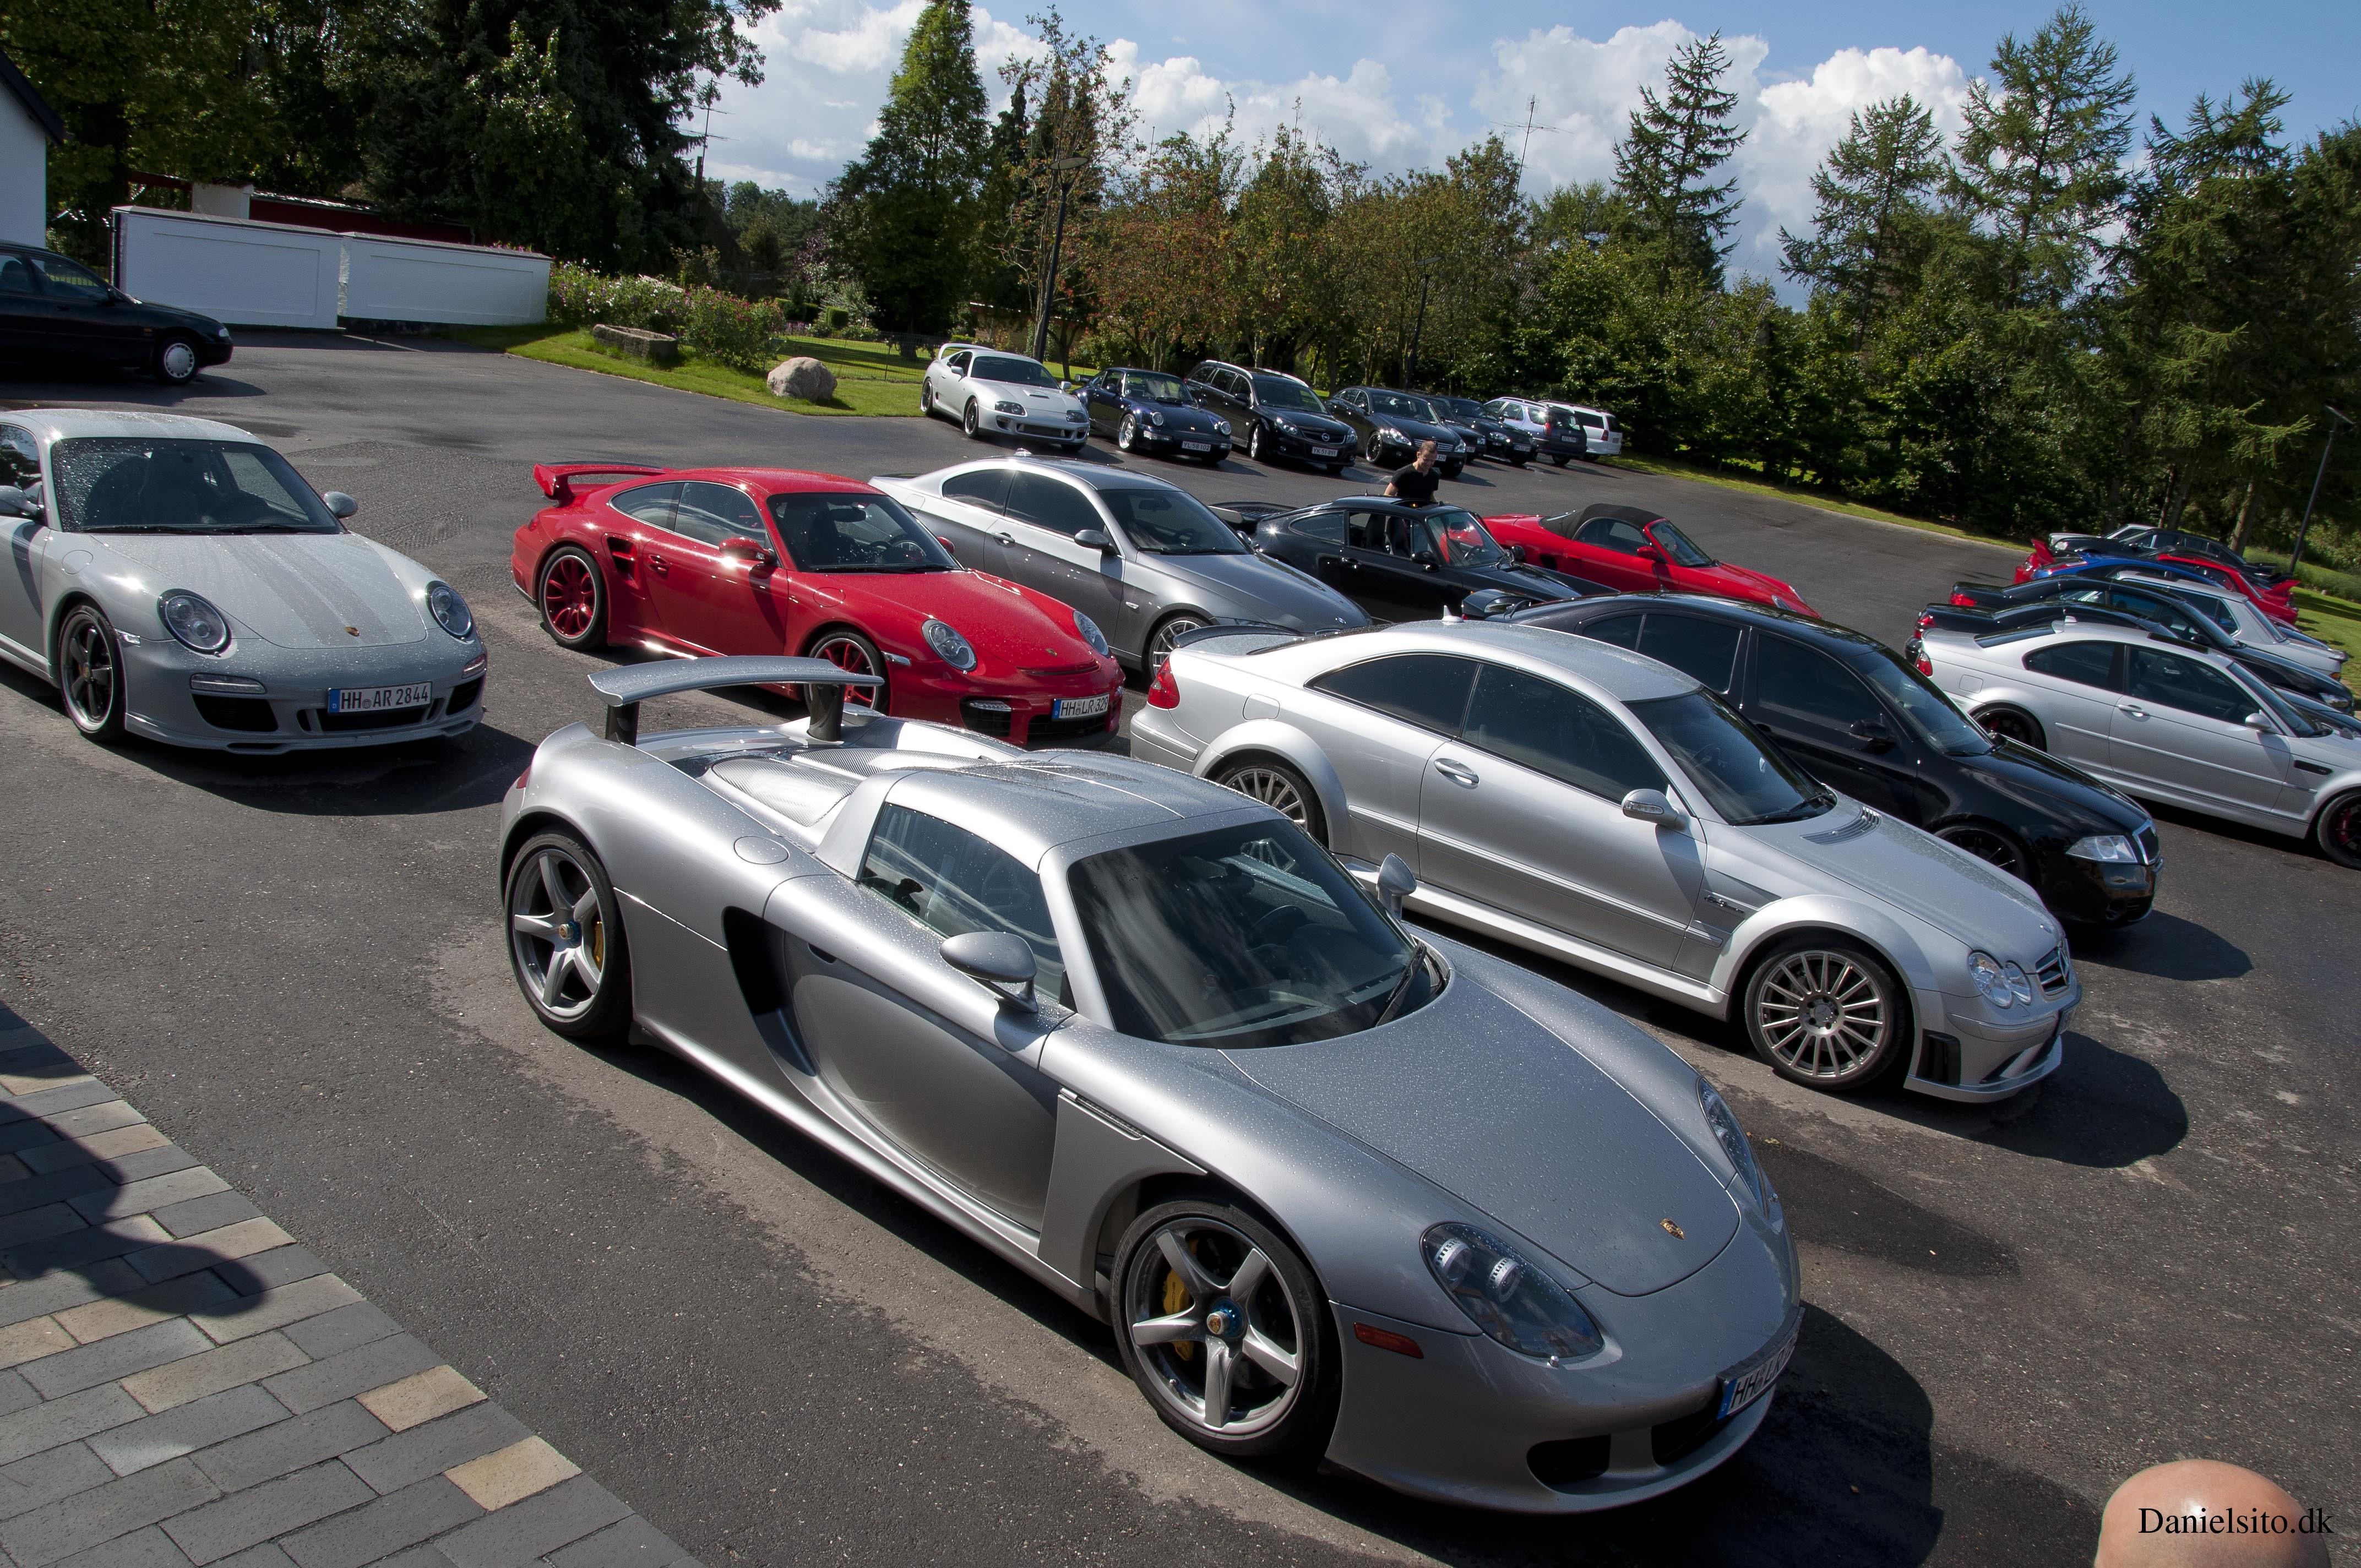 Cars Sale Denmark Inspirational Denmark Also Has Nice Cars Page 1 General Gassing Pistonheads